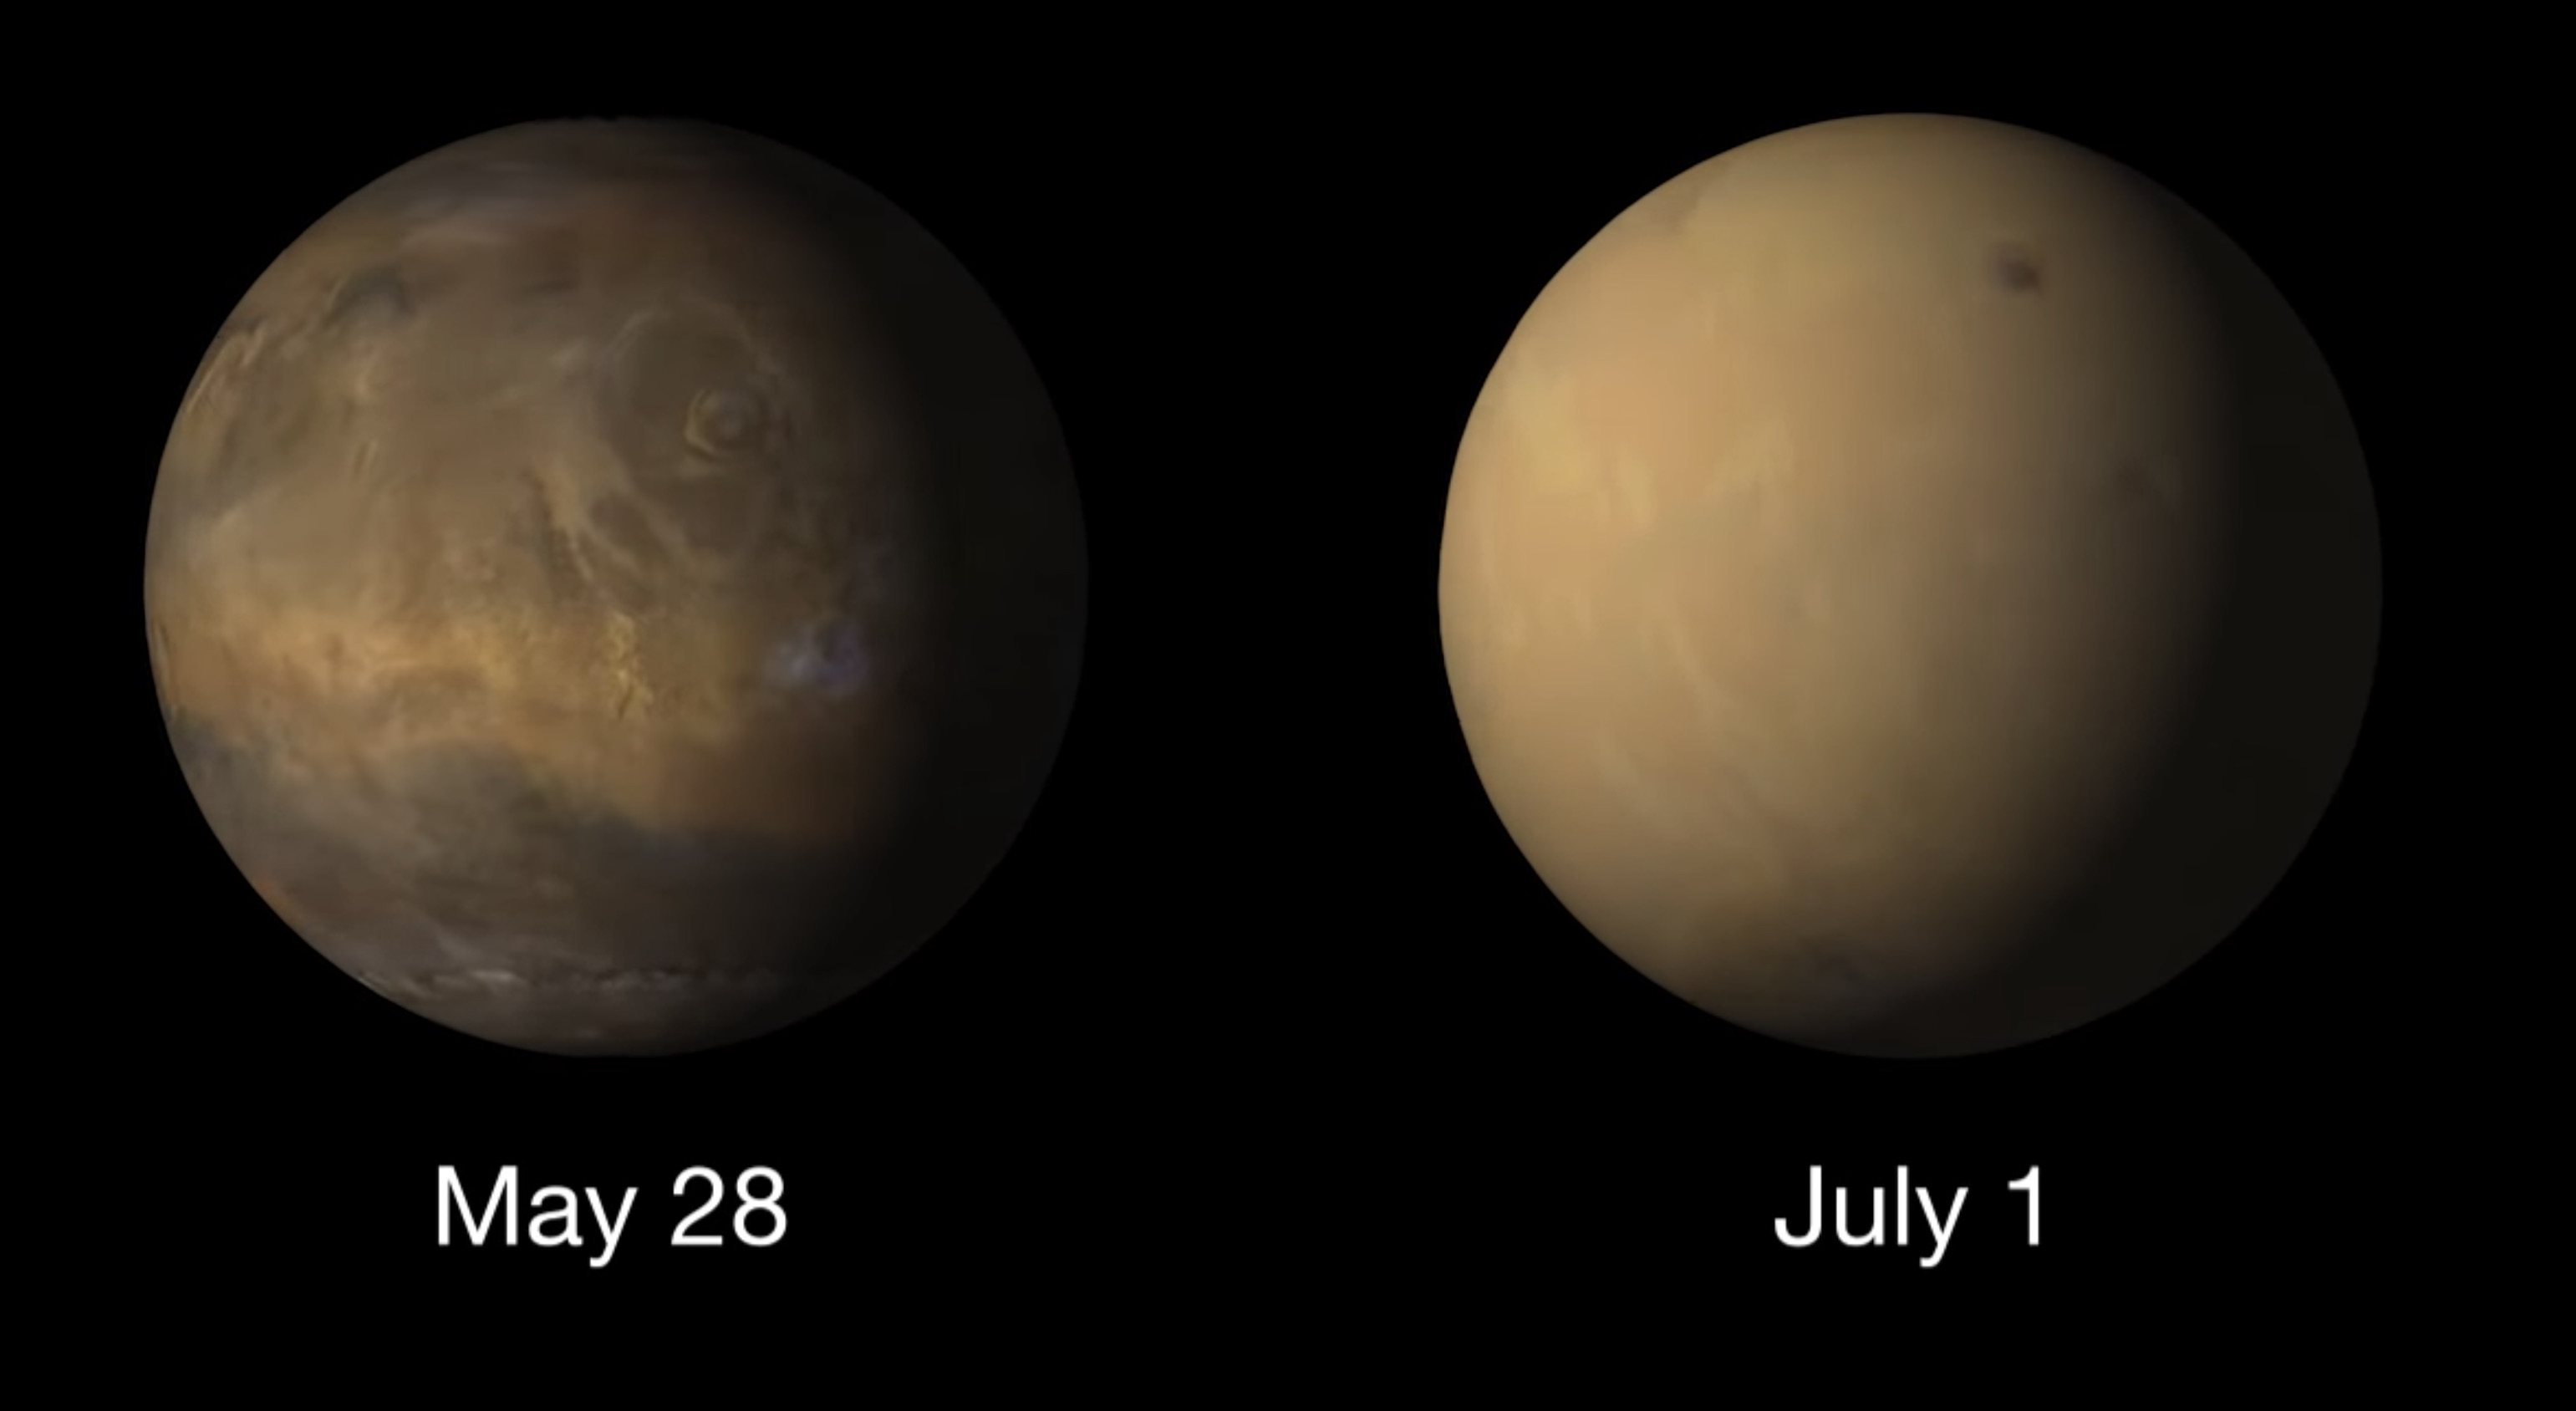 mars-dust-storm-image-before-after